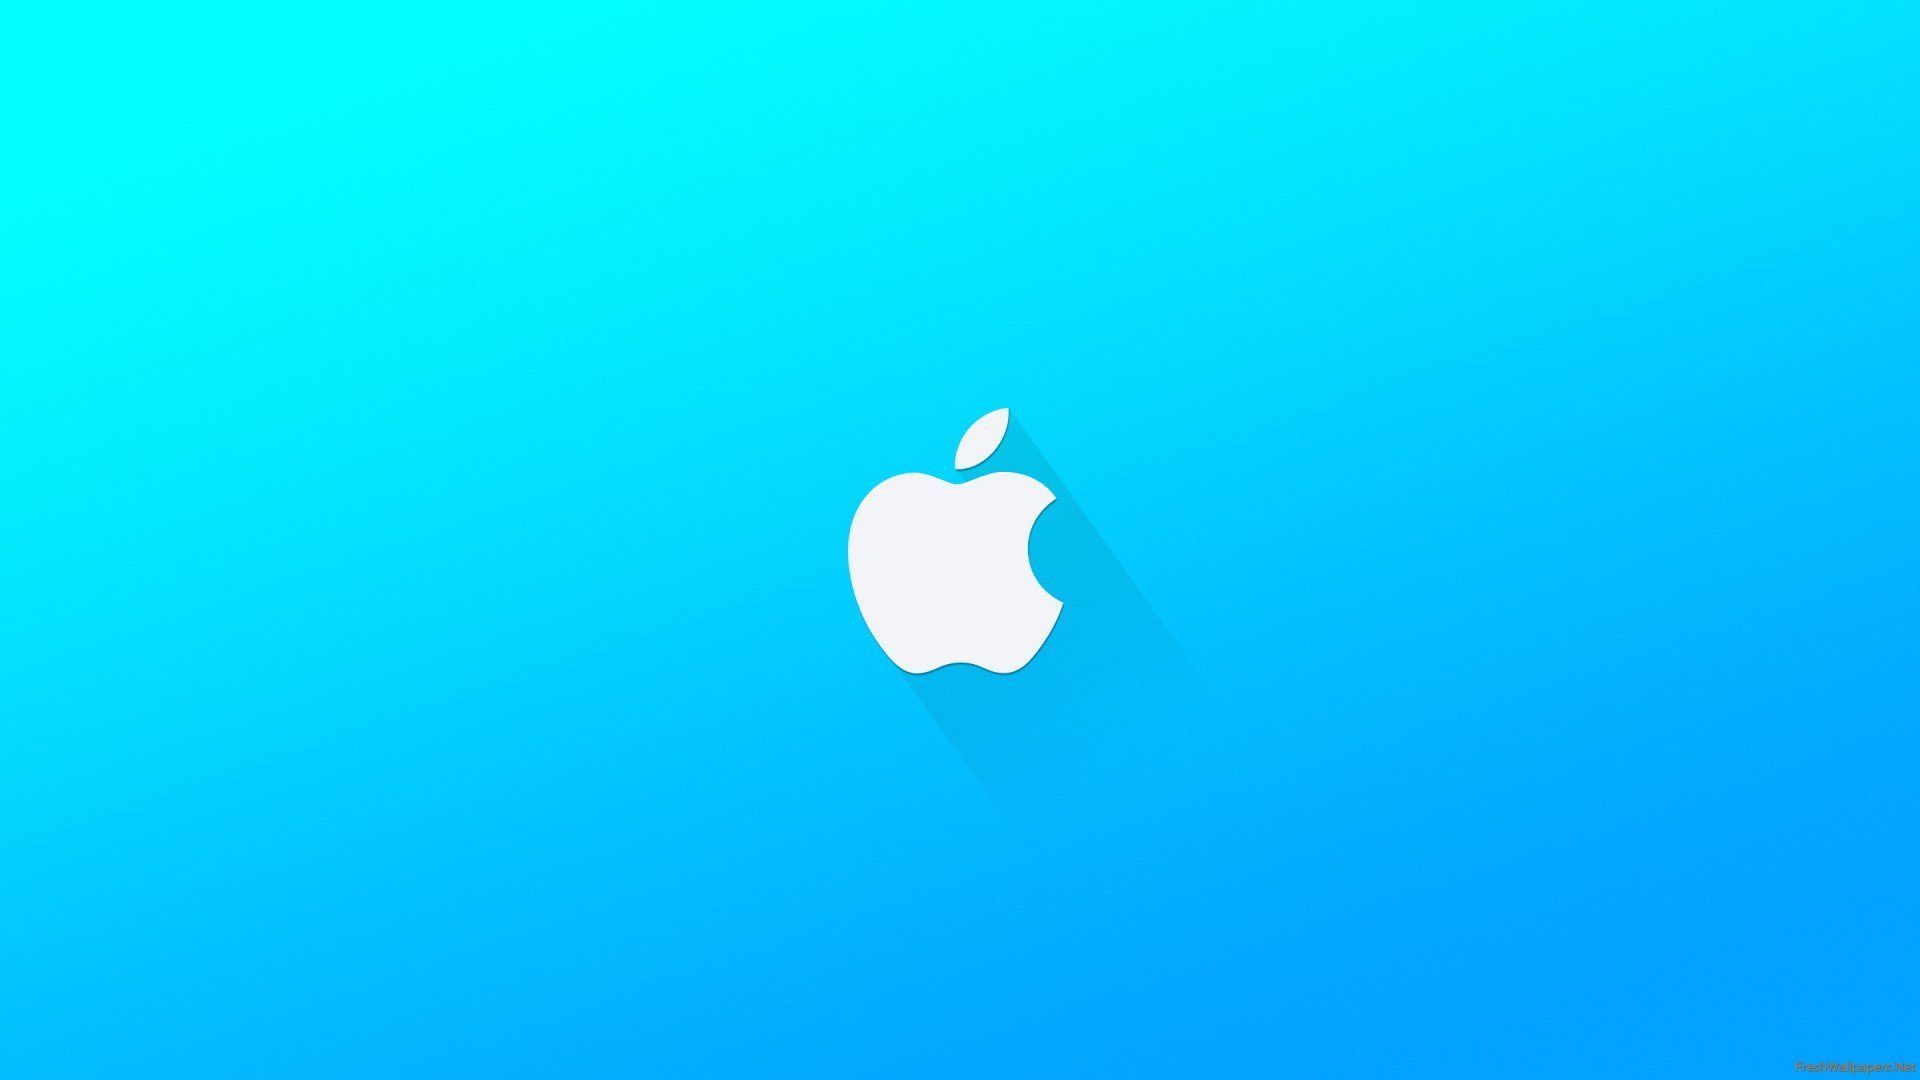 apple-logo-6